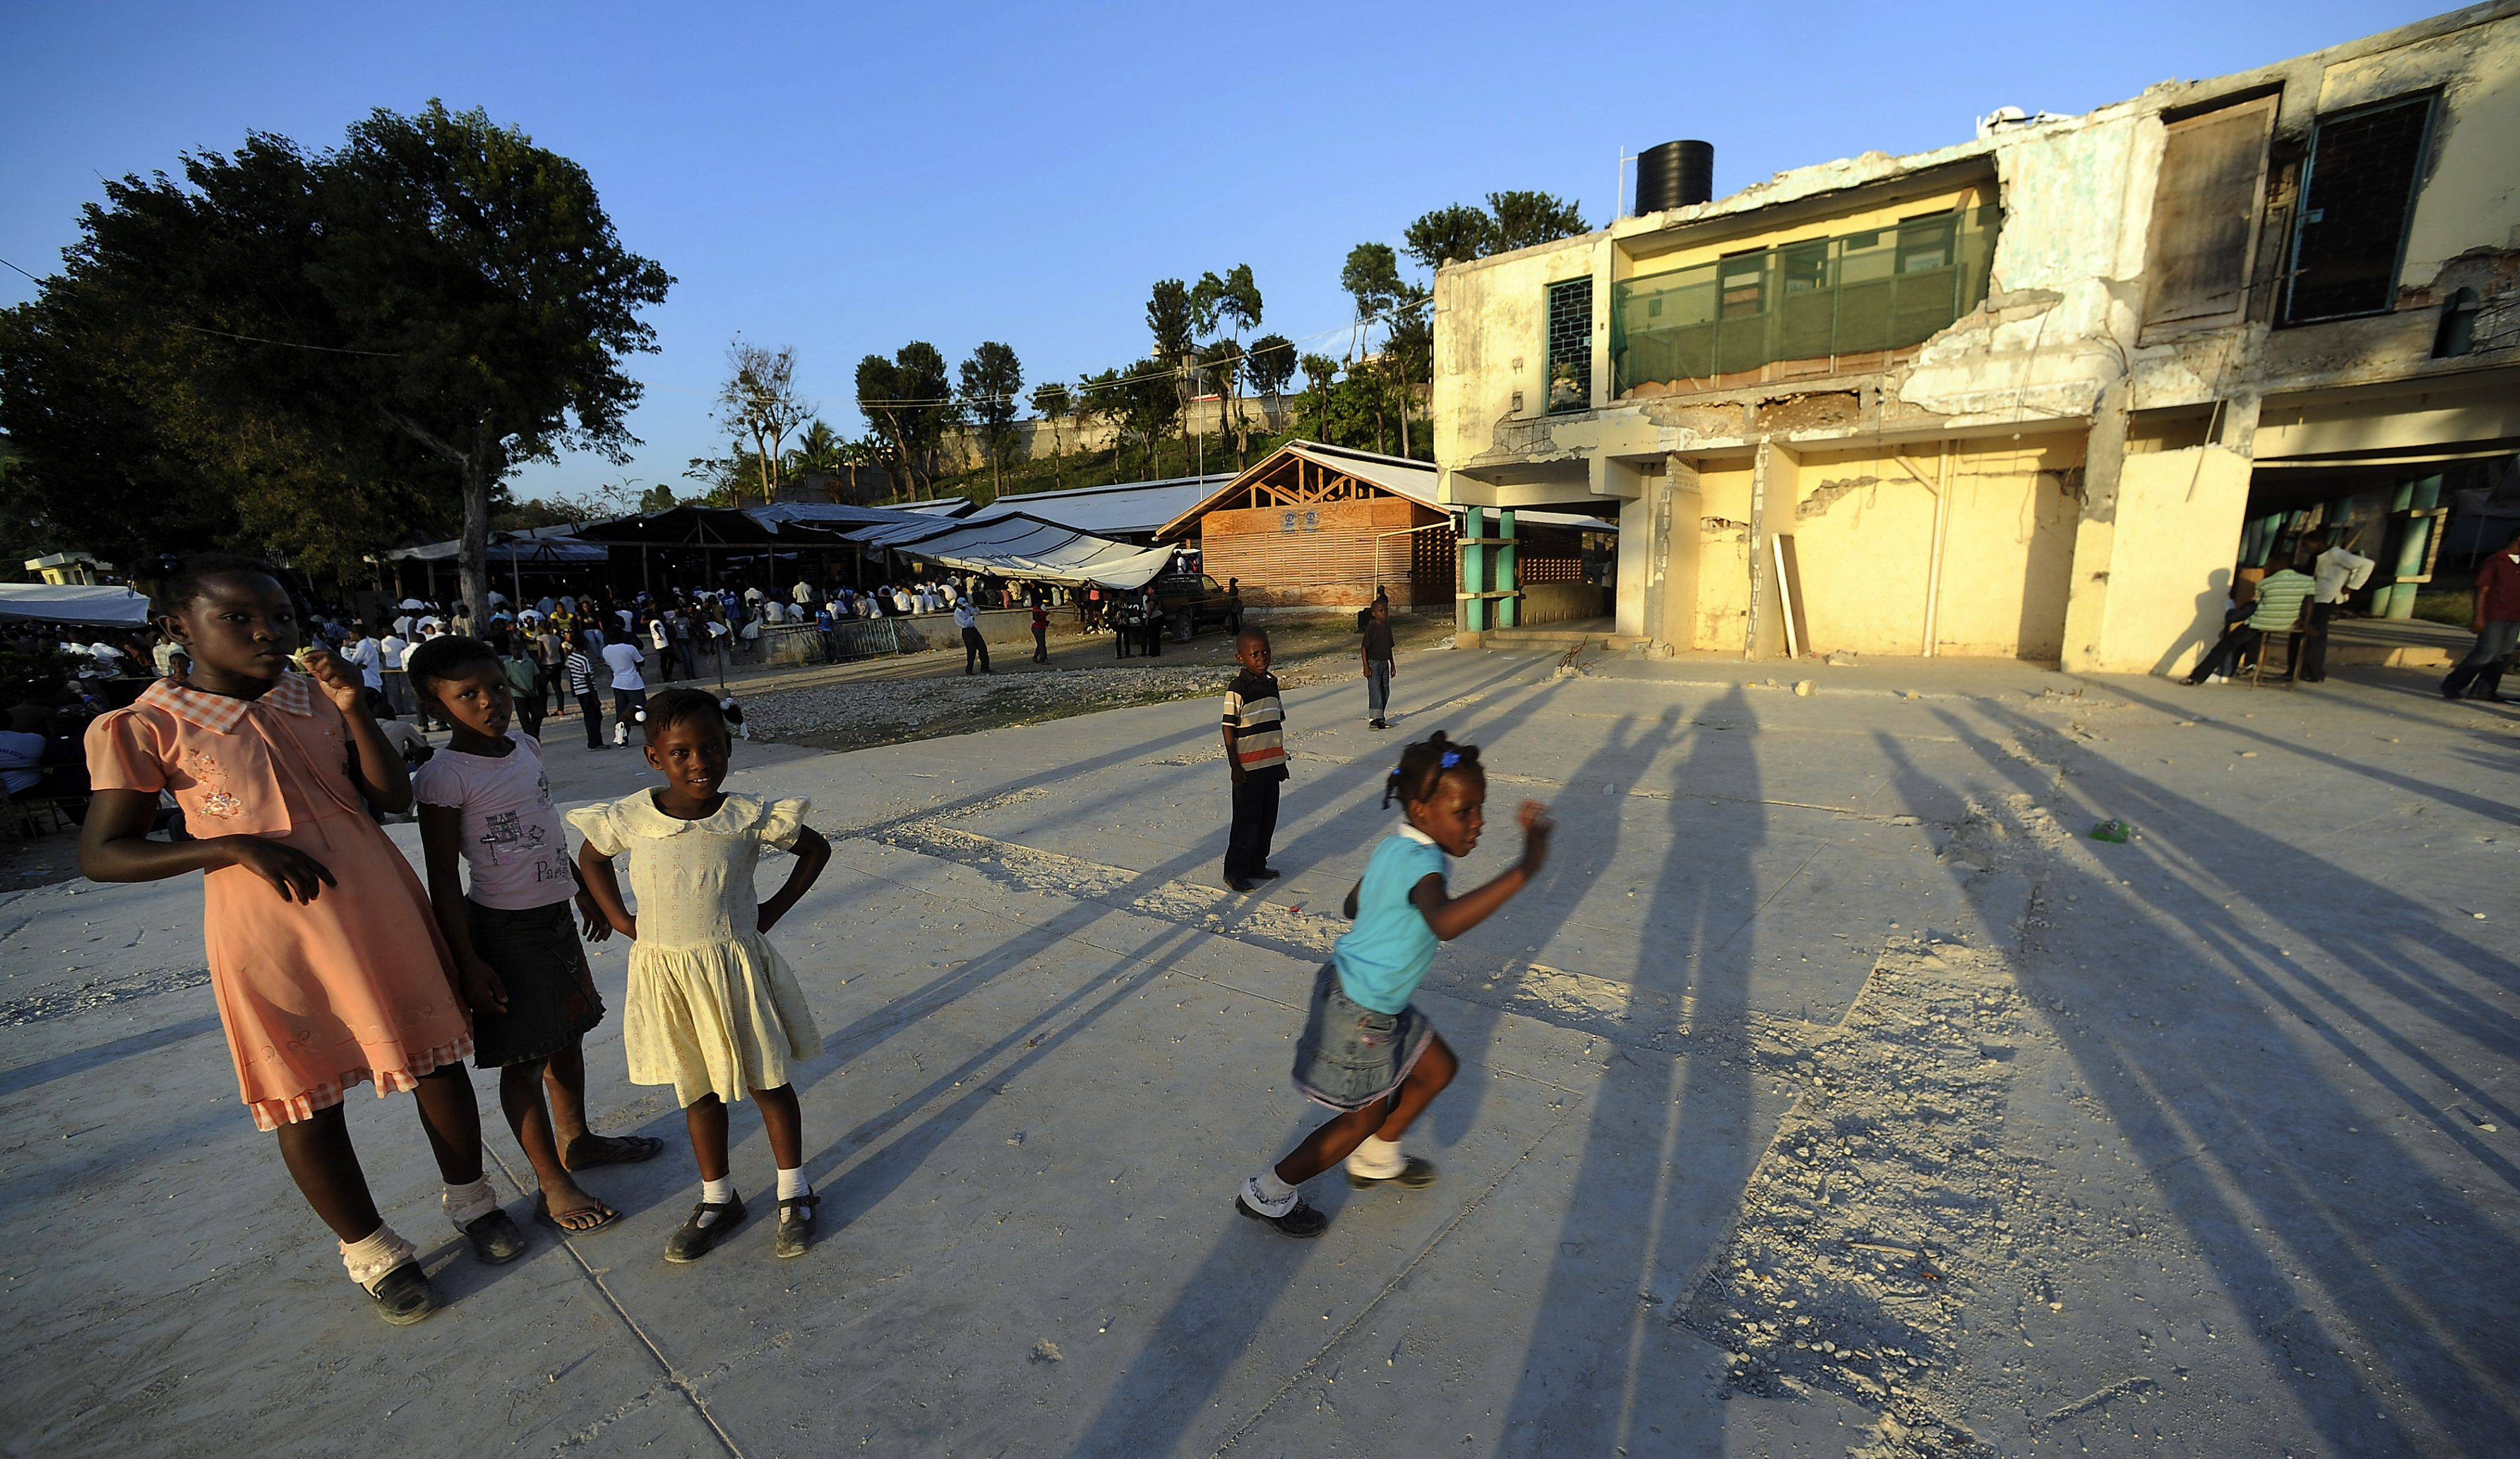 Haitian children dressed in their Sunday best play on what was a school that was destroyed by the earthquake of 2010.